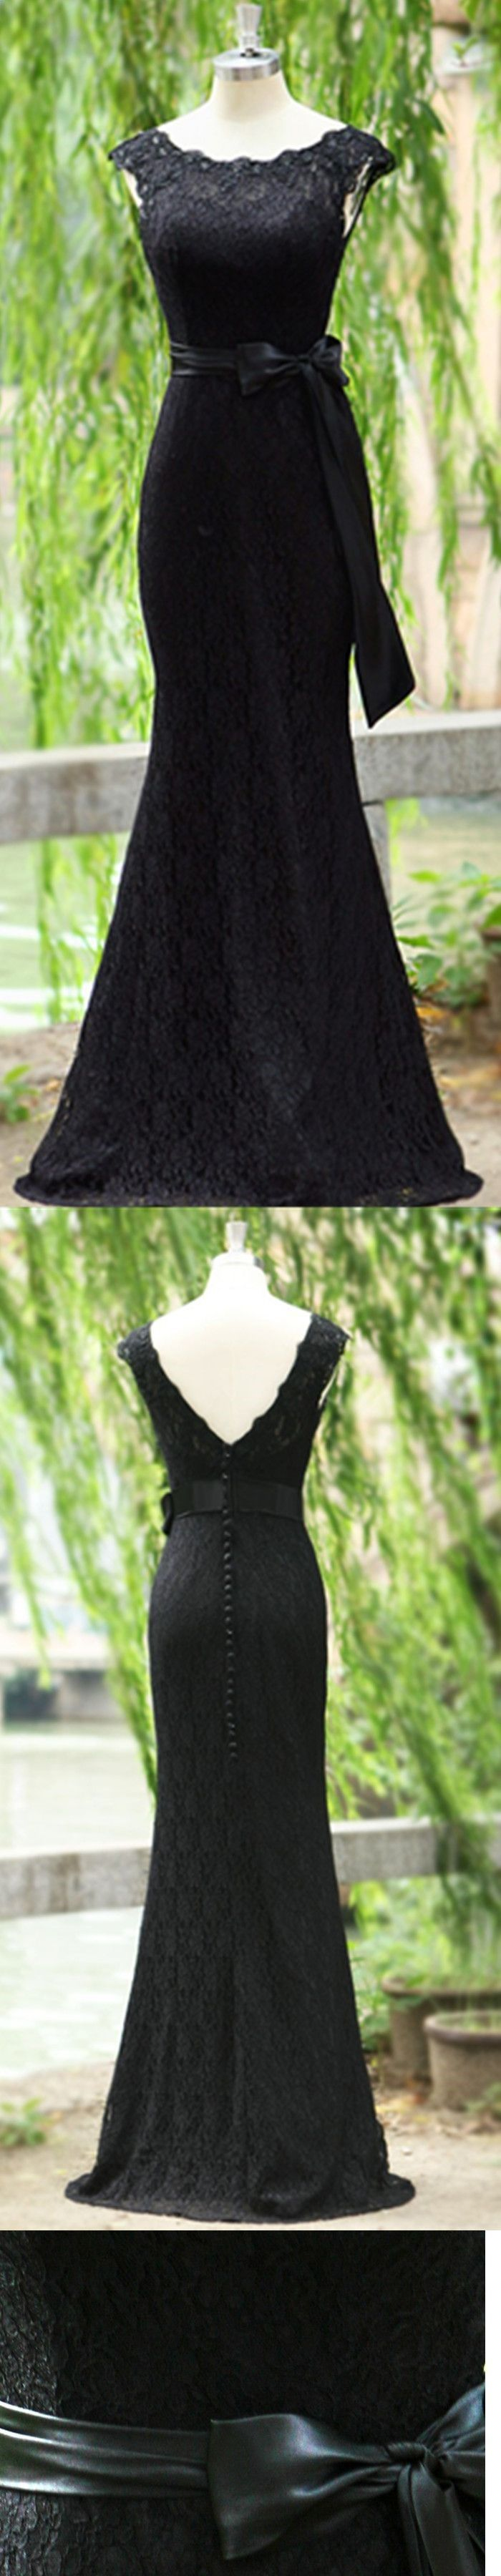 Black Lace Prom Dresses Exquisite Mermaid Prom Dresses,Trumpet Scoop Neck Ribbon Backless Prom Dress,Long Evening Prom Gowns,Formal Woman Dress,Custom Size Evening Dresses,Cheap Prom Dresses,Black Mother of the bridesmaid Dresses,Mermaid Mothers Dresses